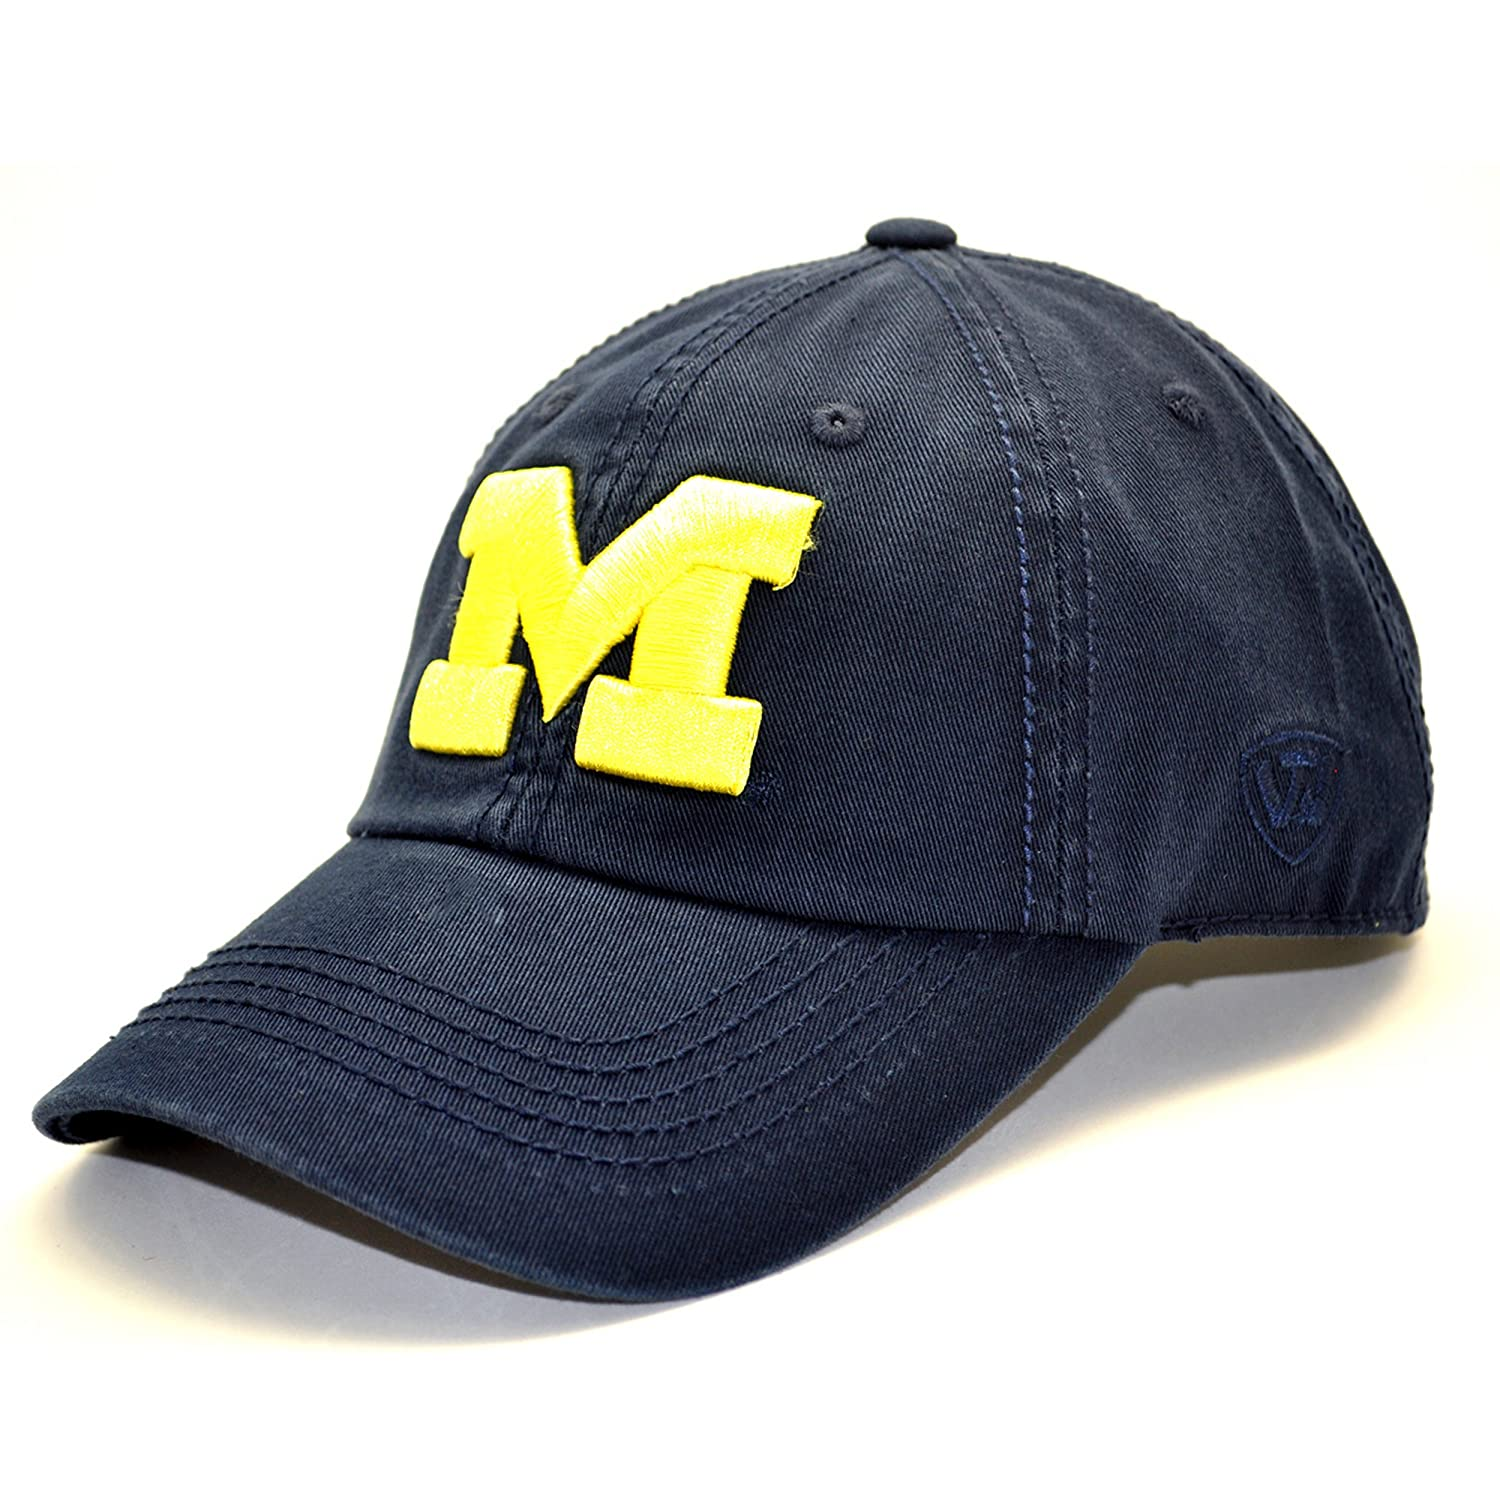 size 40 03131 eaa56 Amazon.com   NCAA Michigan Crew Adjustable Hat, Navy   University Of Michigan  Hats   Clothing